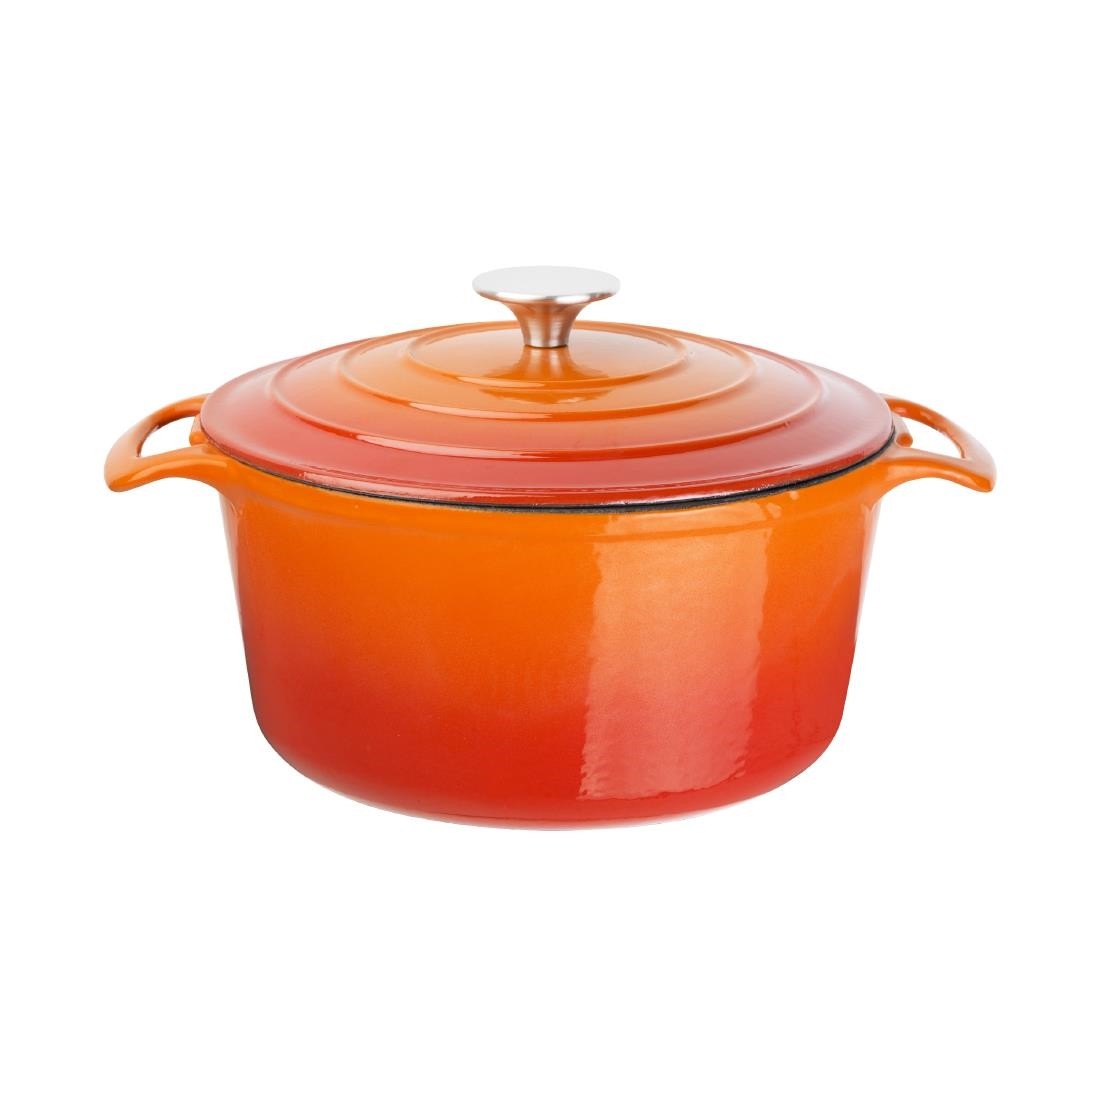 Cast Iron Casserole Dish Vogue Orange Round Casserole Dish 3 2ltr